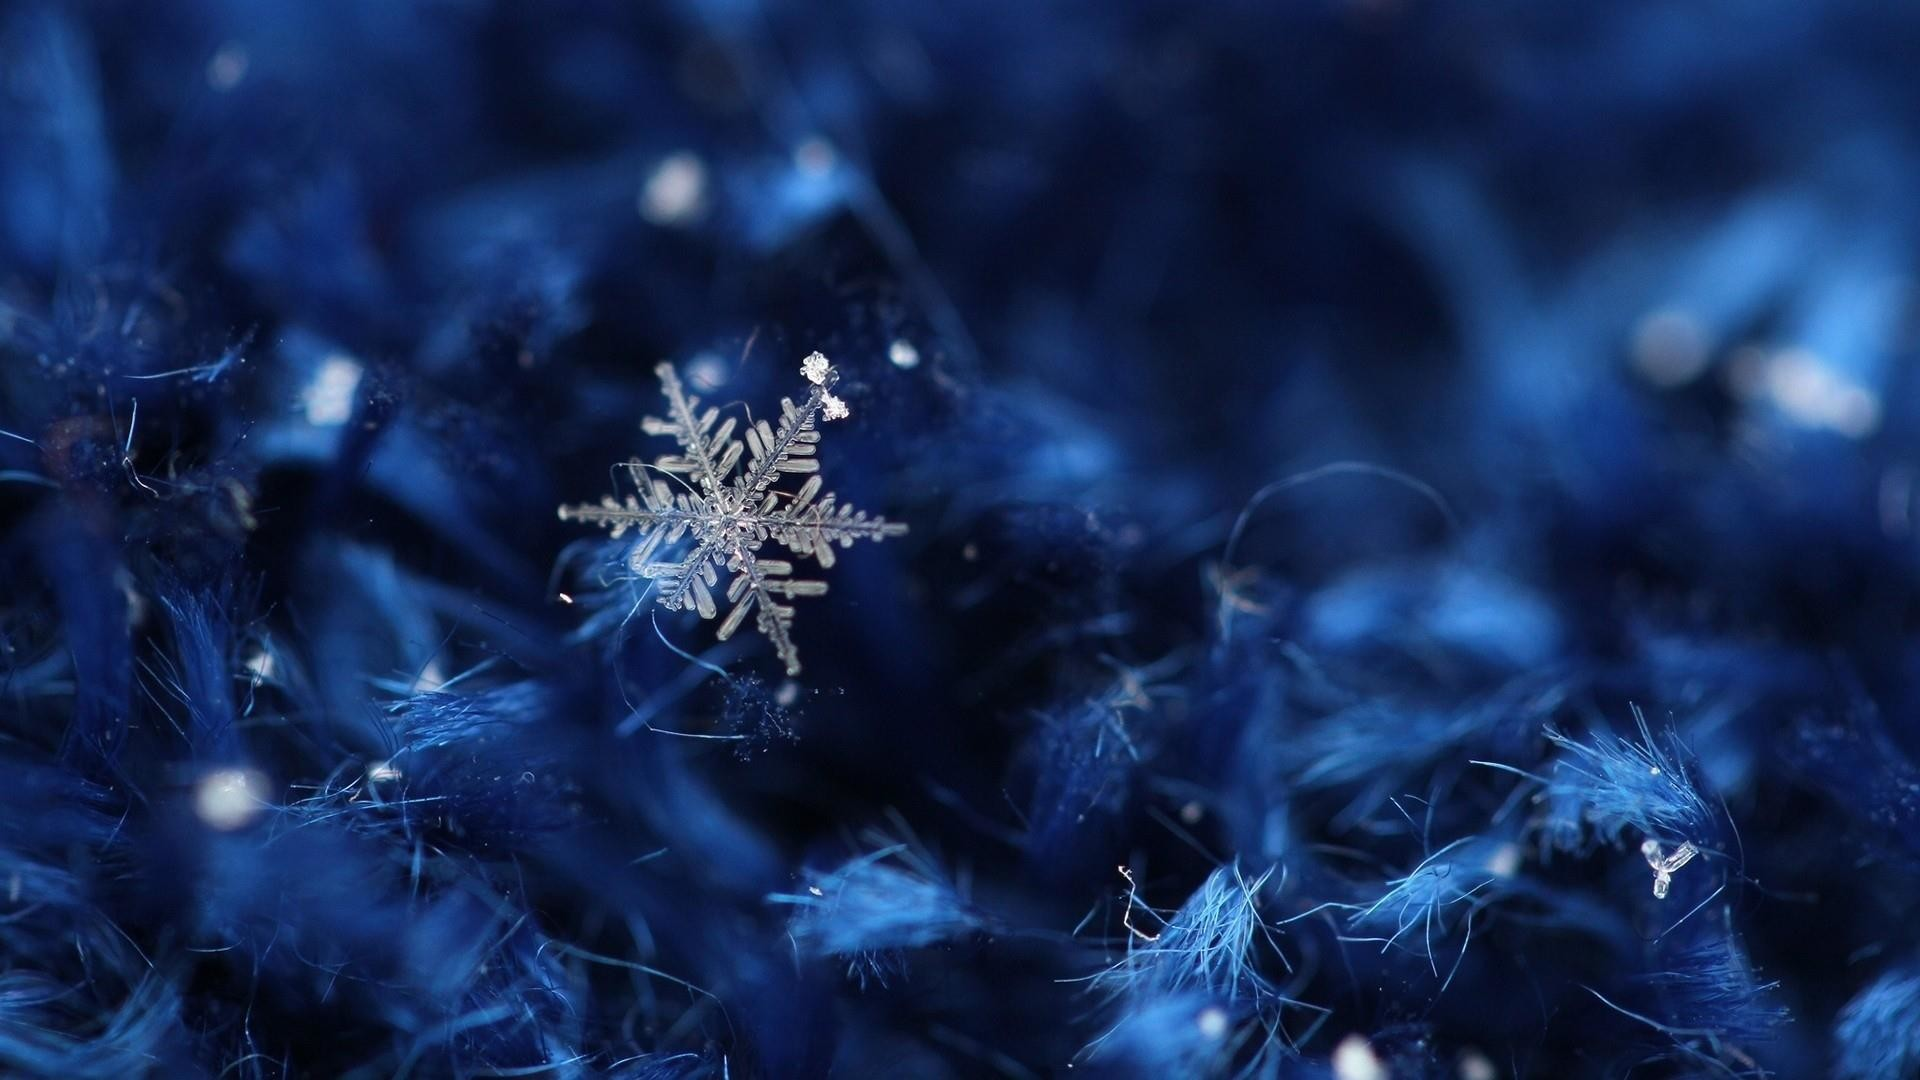 Res: 1920x1080, Christmas Ice Crystal Wallpaper   Wallpaper Studio 10   Tens of thousands  HD and UltraHD wallpapers for Android, Windows and Xbox